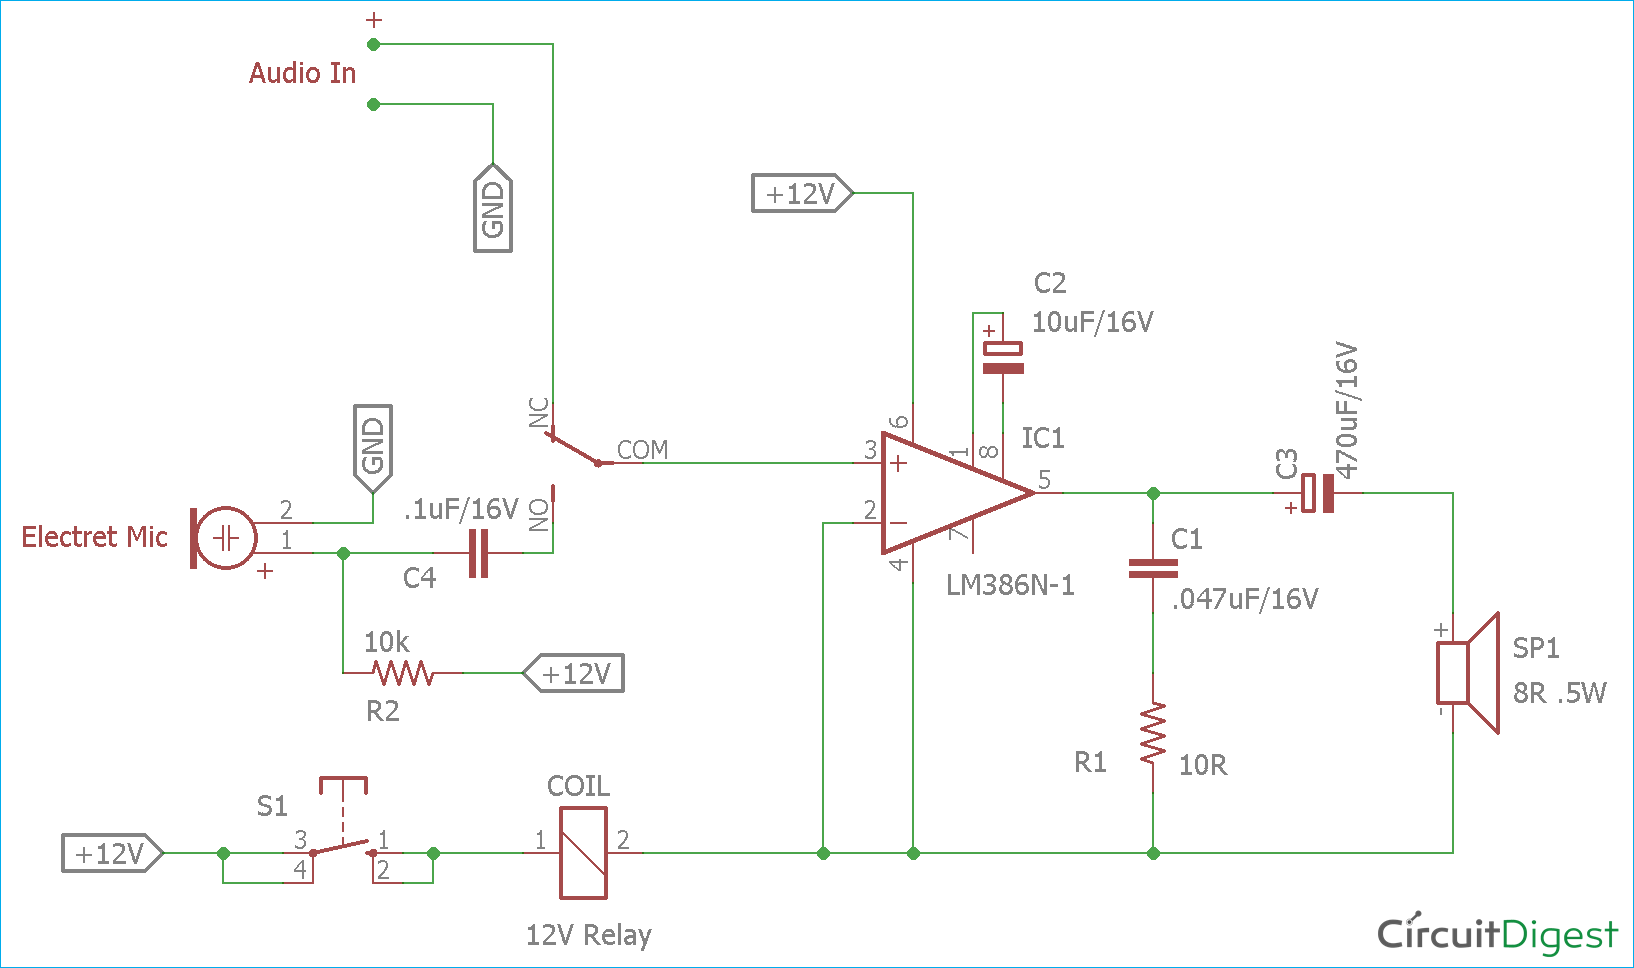 audio voice over circuit diagram using lm386 electronic circuit rh pinterest com Schematic Diagram Schematic Diagram